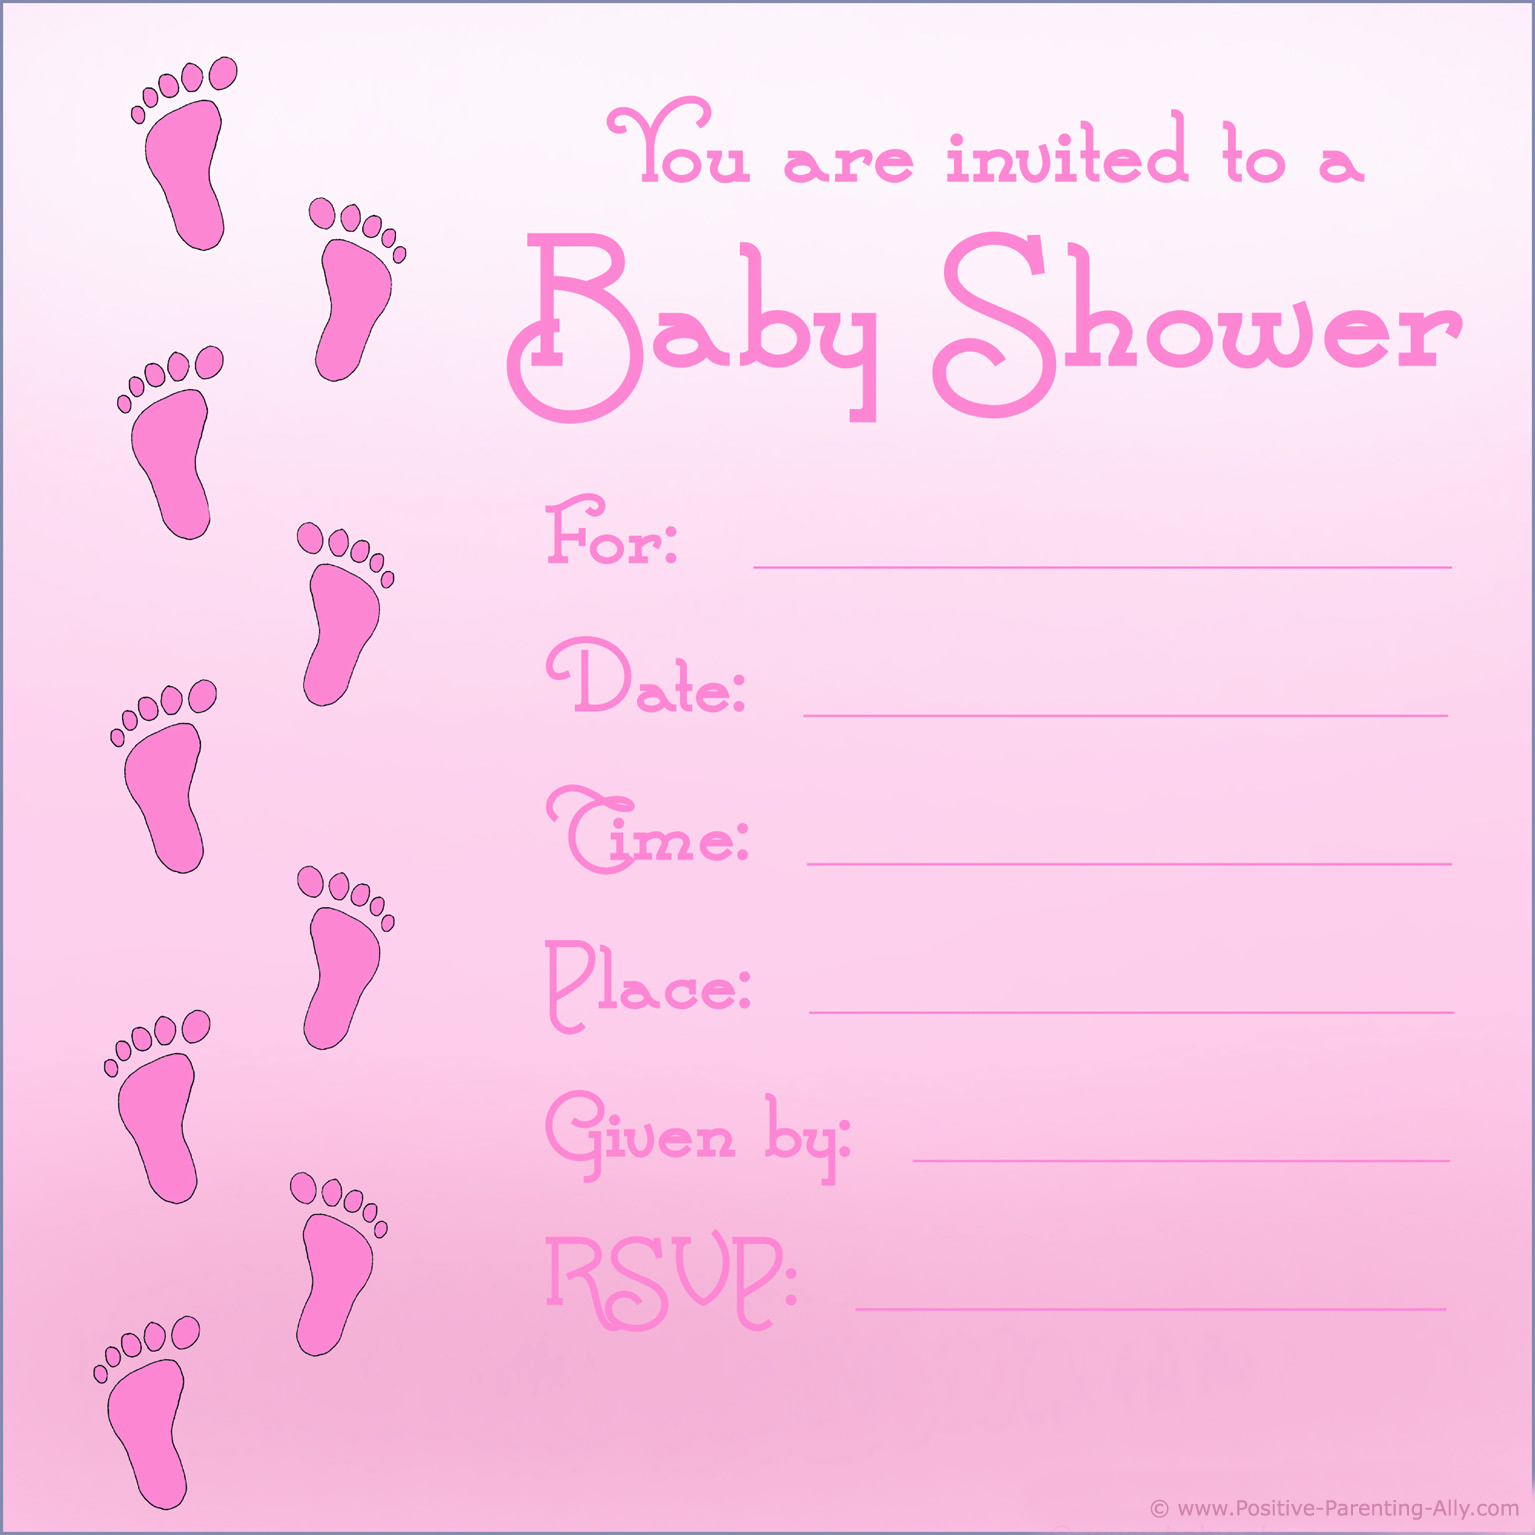 Printable Baby Shower Invitation Lovely Free Printable Baby Shower Invitations In High Quality